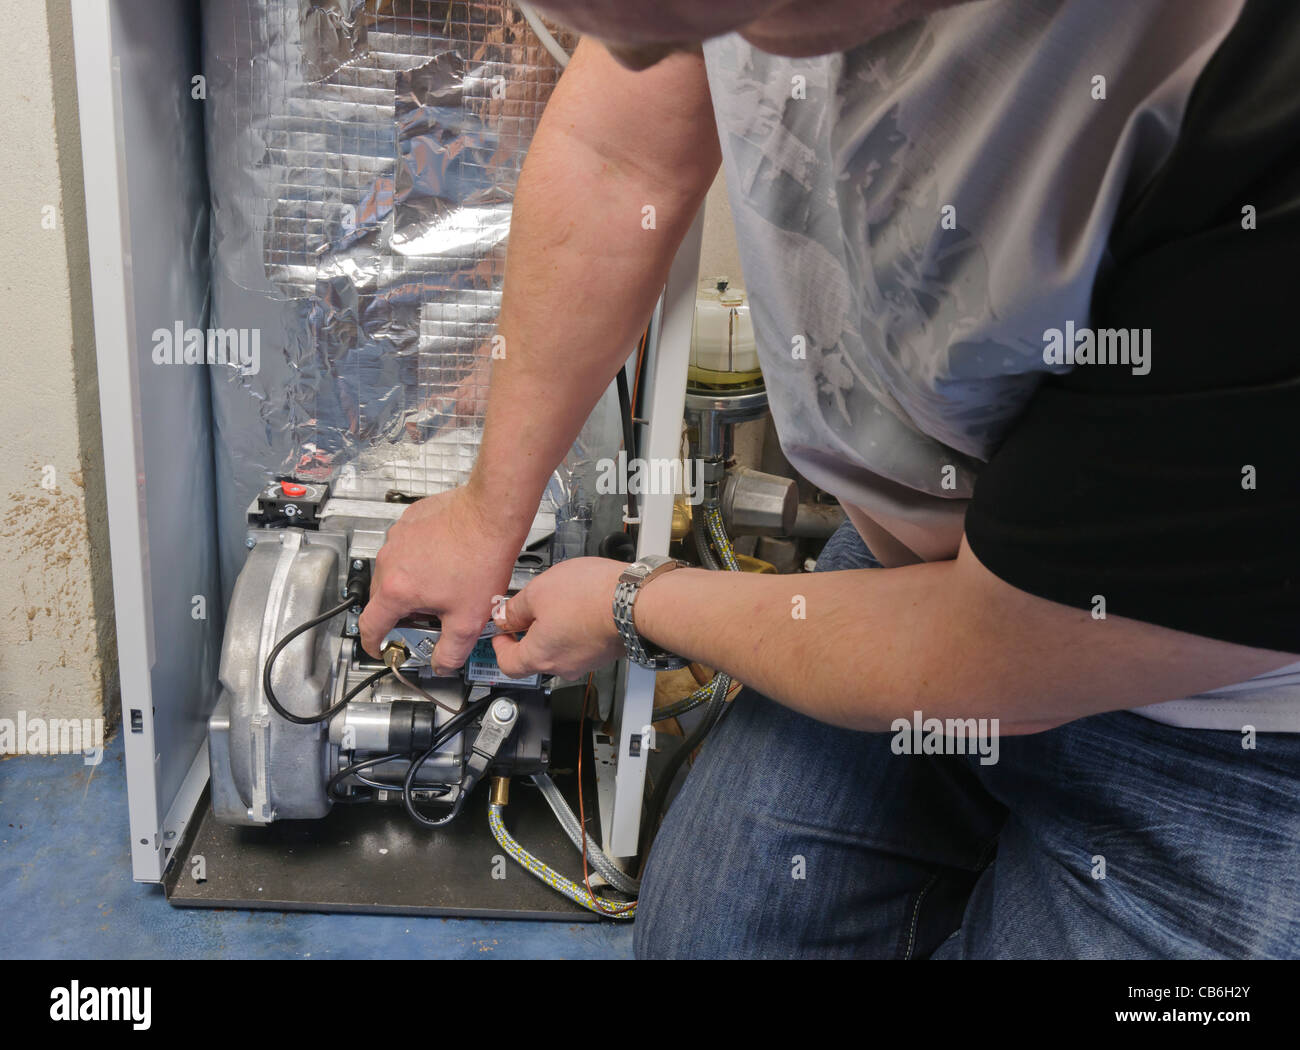 Man servicing the burner on an oil-fired domestic central heating boiler. - Stock Image